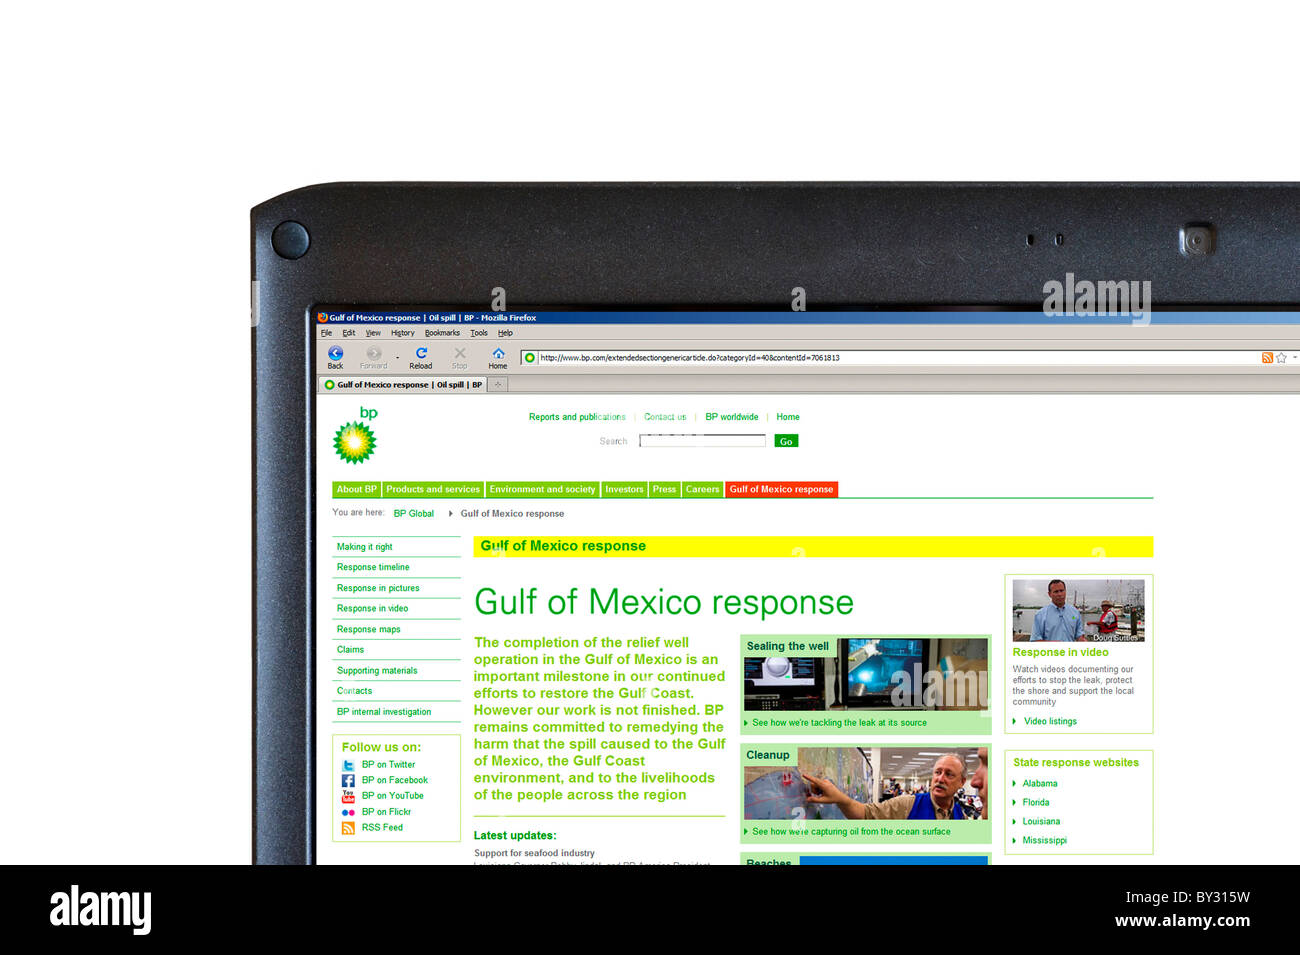 The BP website outlining the response to the Gulf of Mexico Oil Spill in 2010, UK - Stock Image